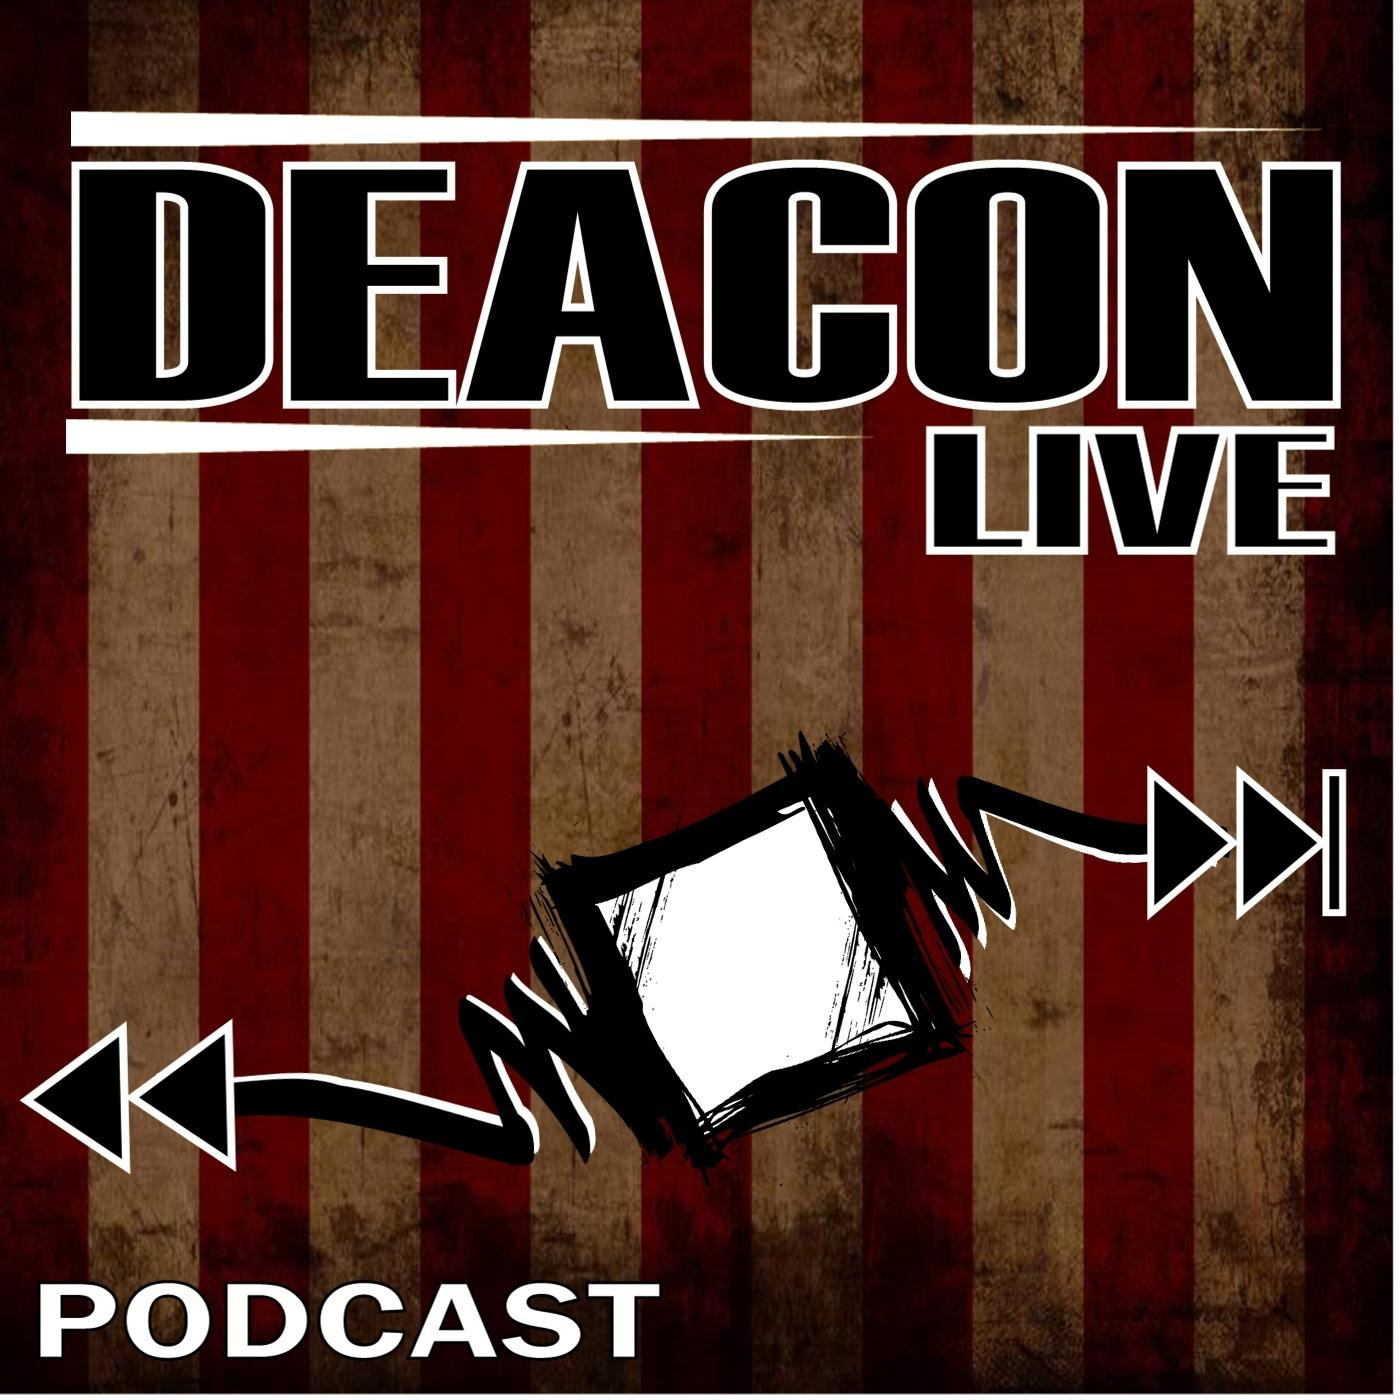 DeaconLive - Essential Moving Parts